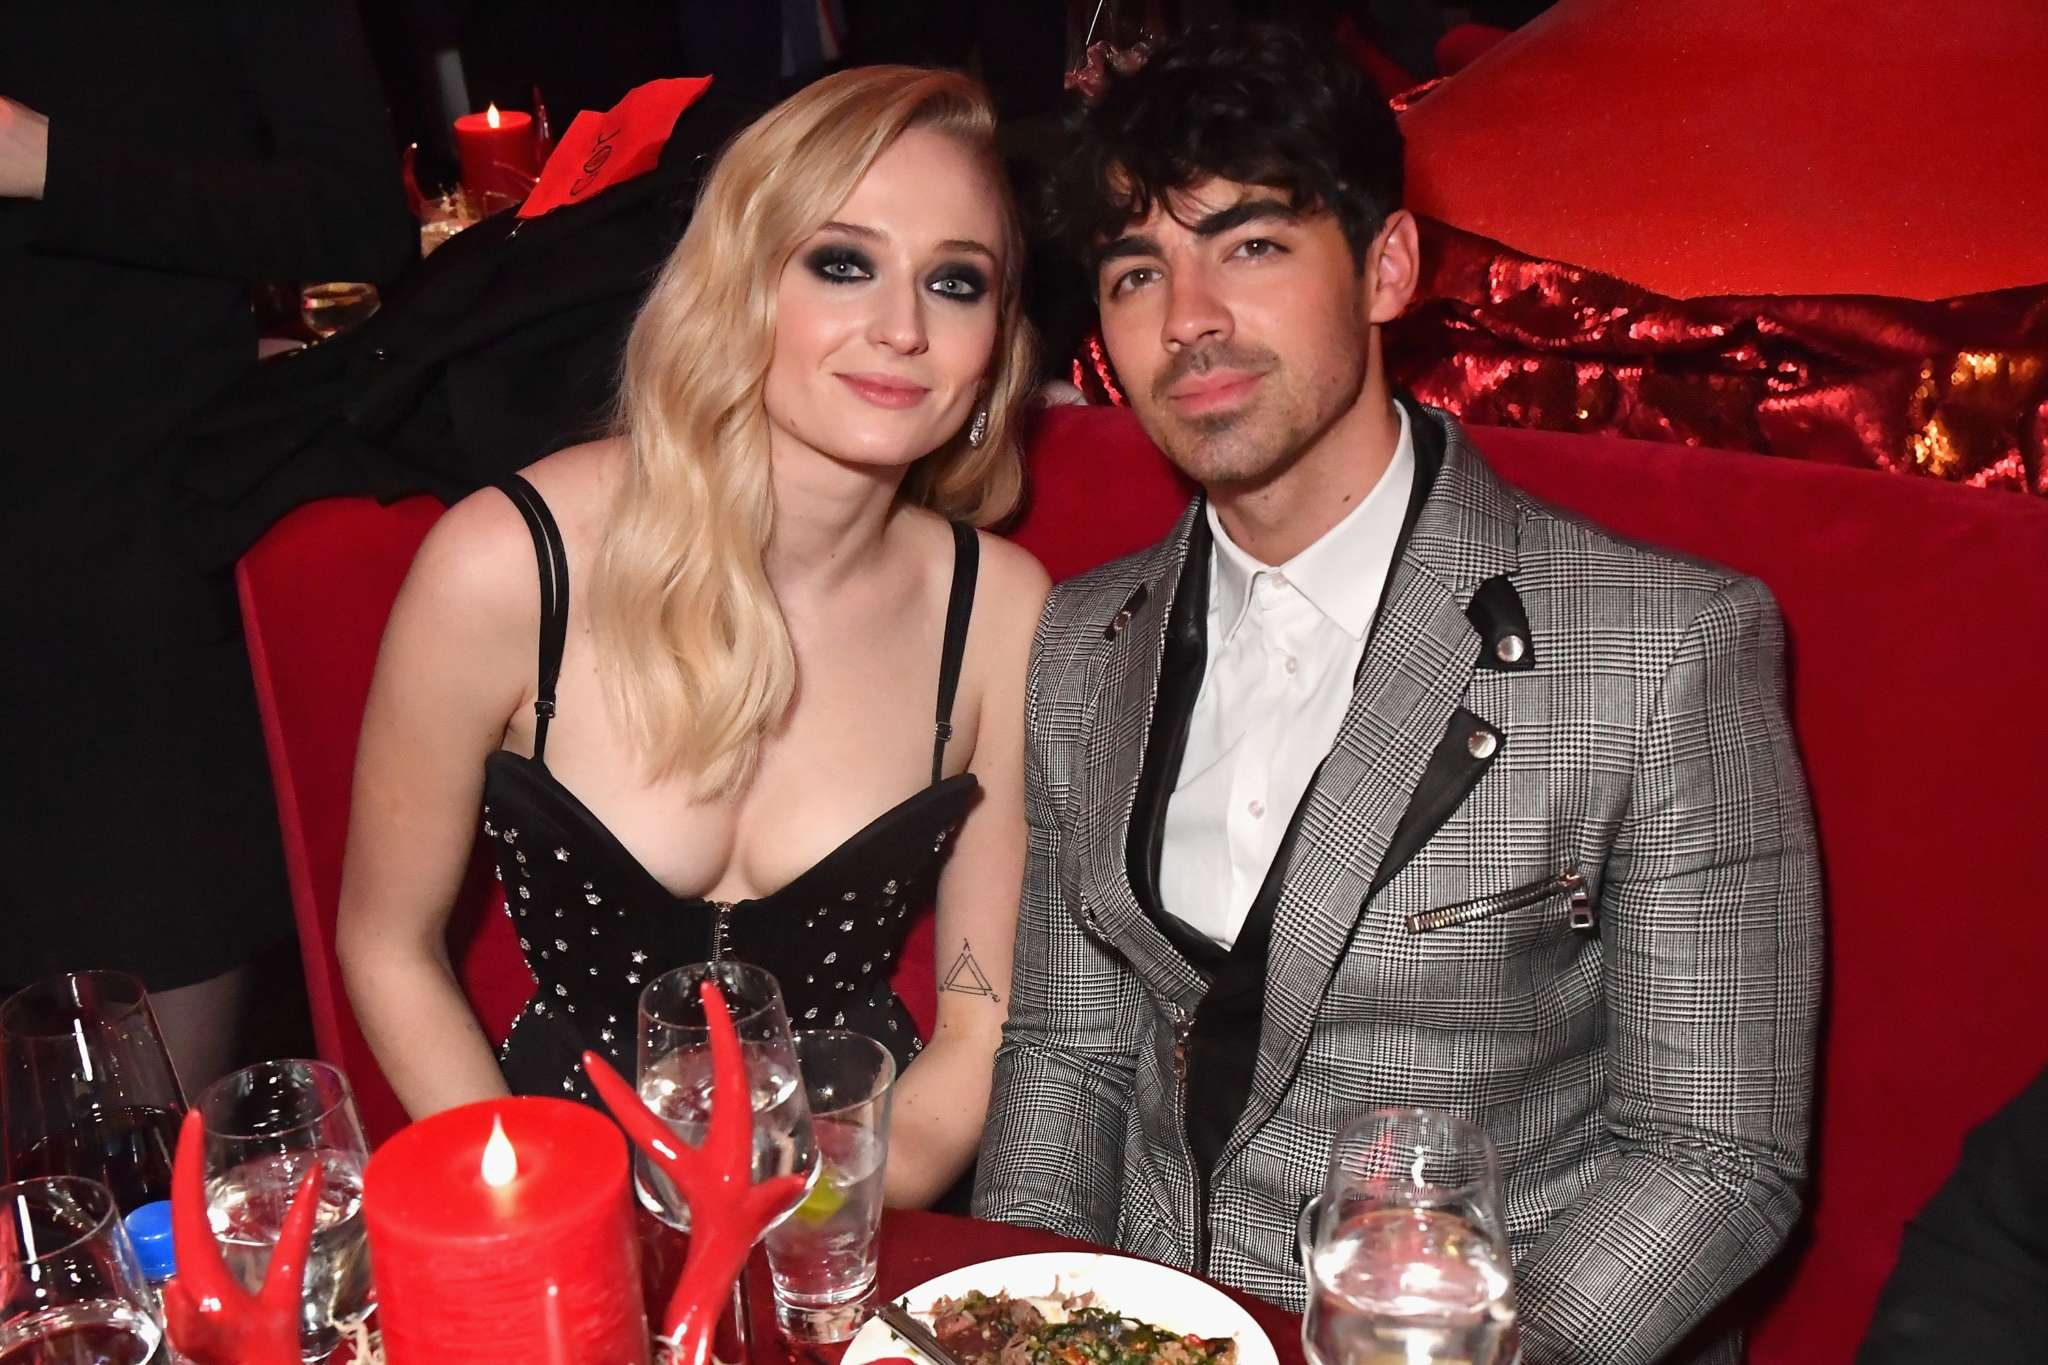 joe-jonas-and-sophie-turner-reportedly-only-letting-close-family-around-their-newborn-heres-why-theyre-extremely-cautious